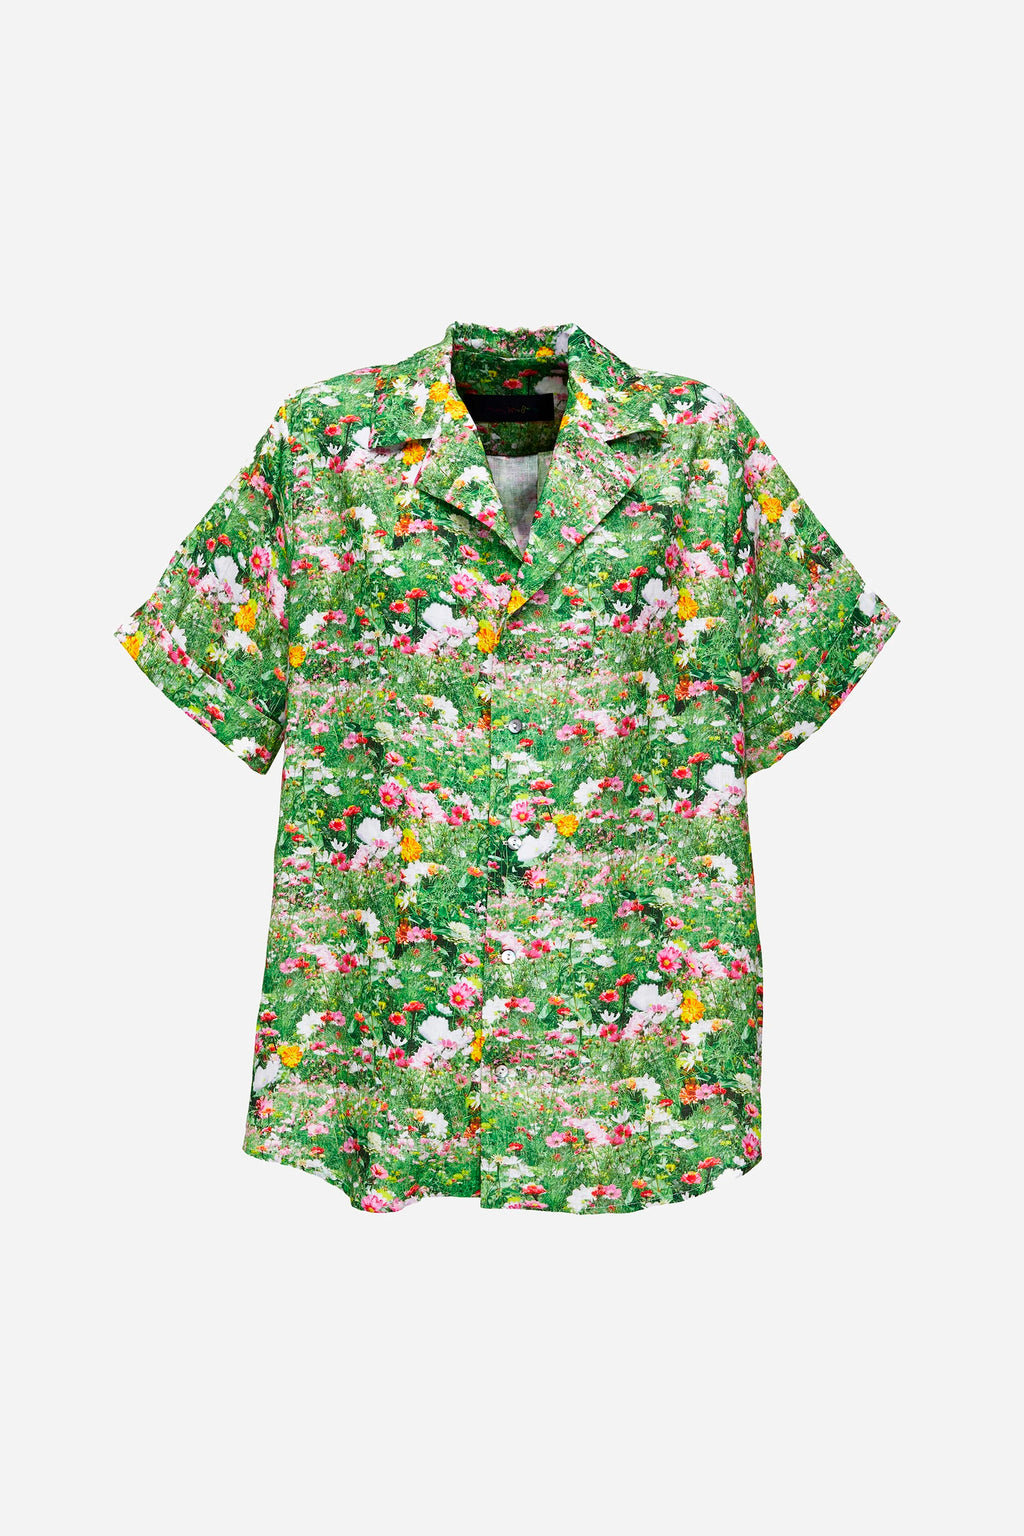 LACY GARDENS HAWAIIAN SHIRT